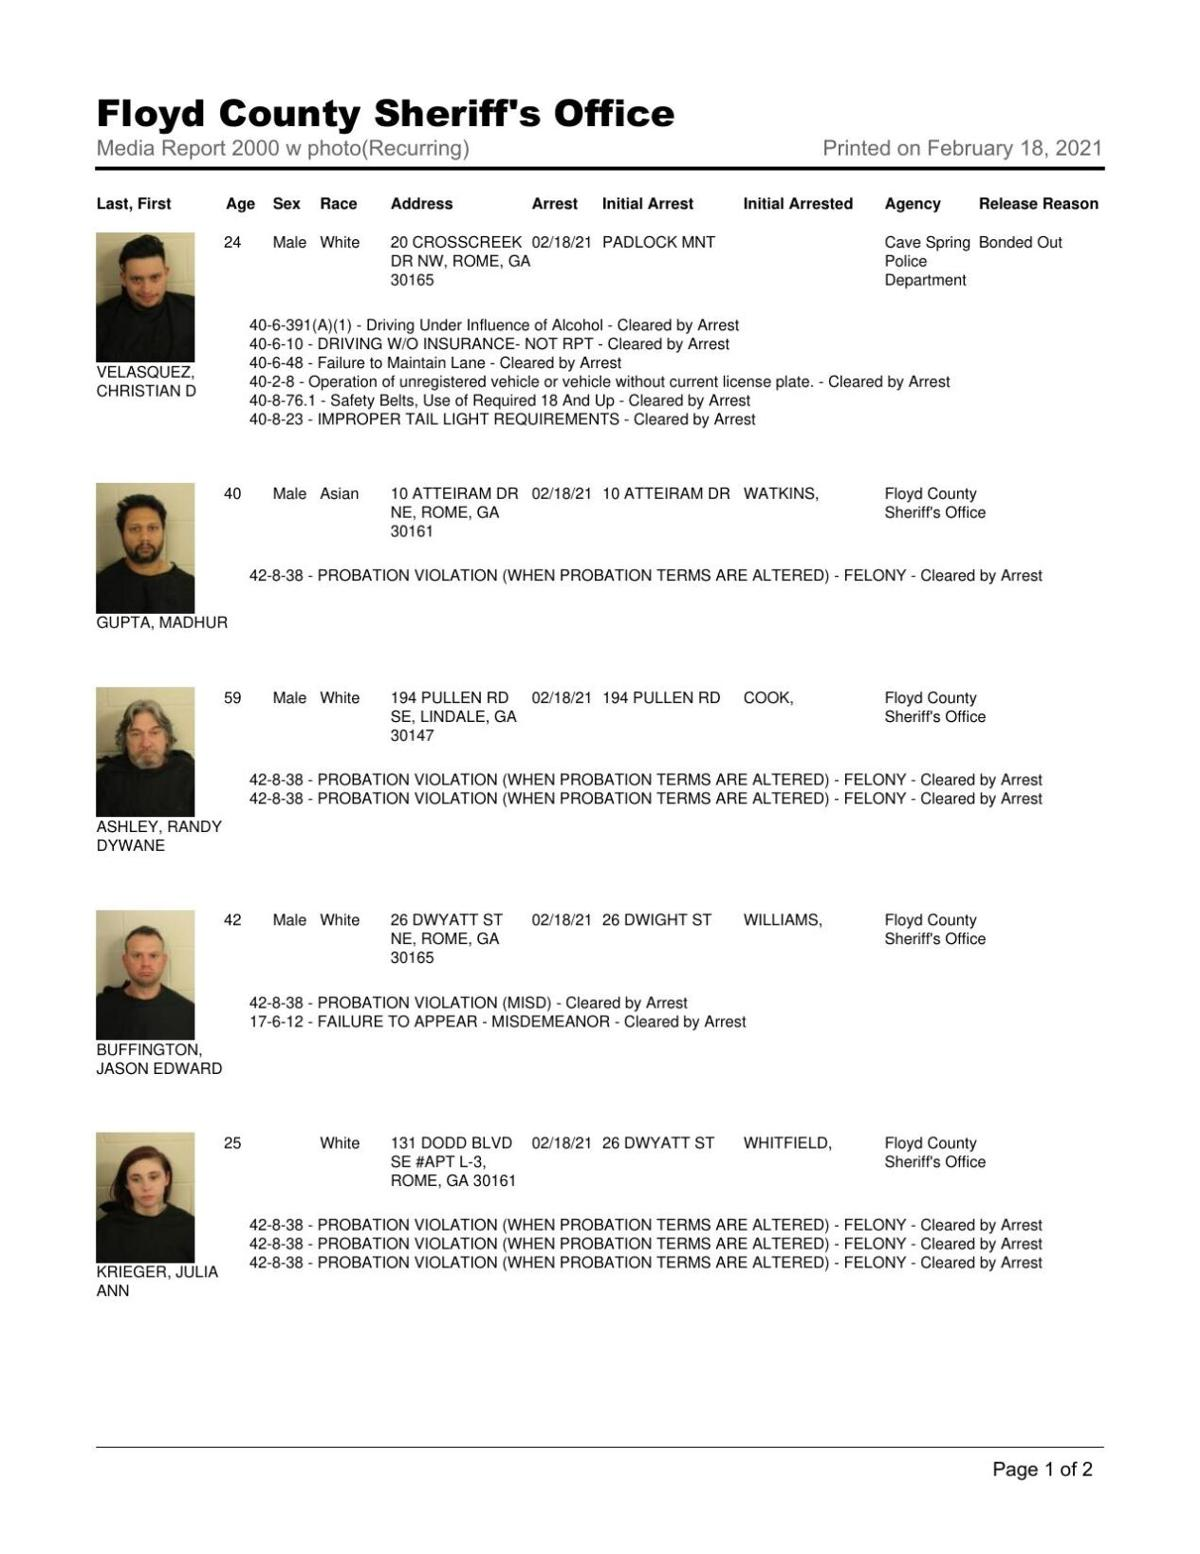 Floyd County Jail report for 8 pm Thursday, Feb. 18